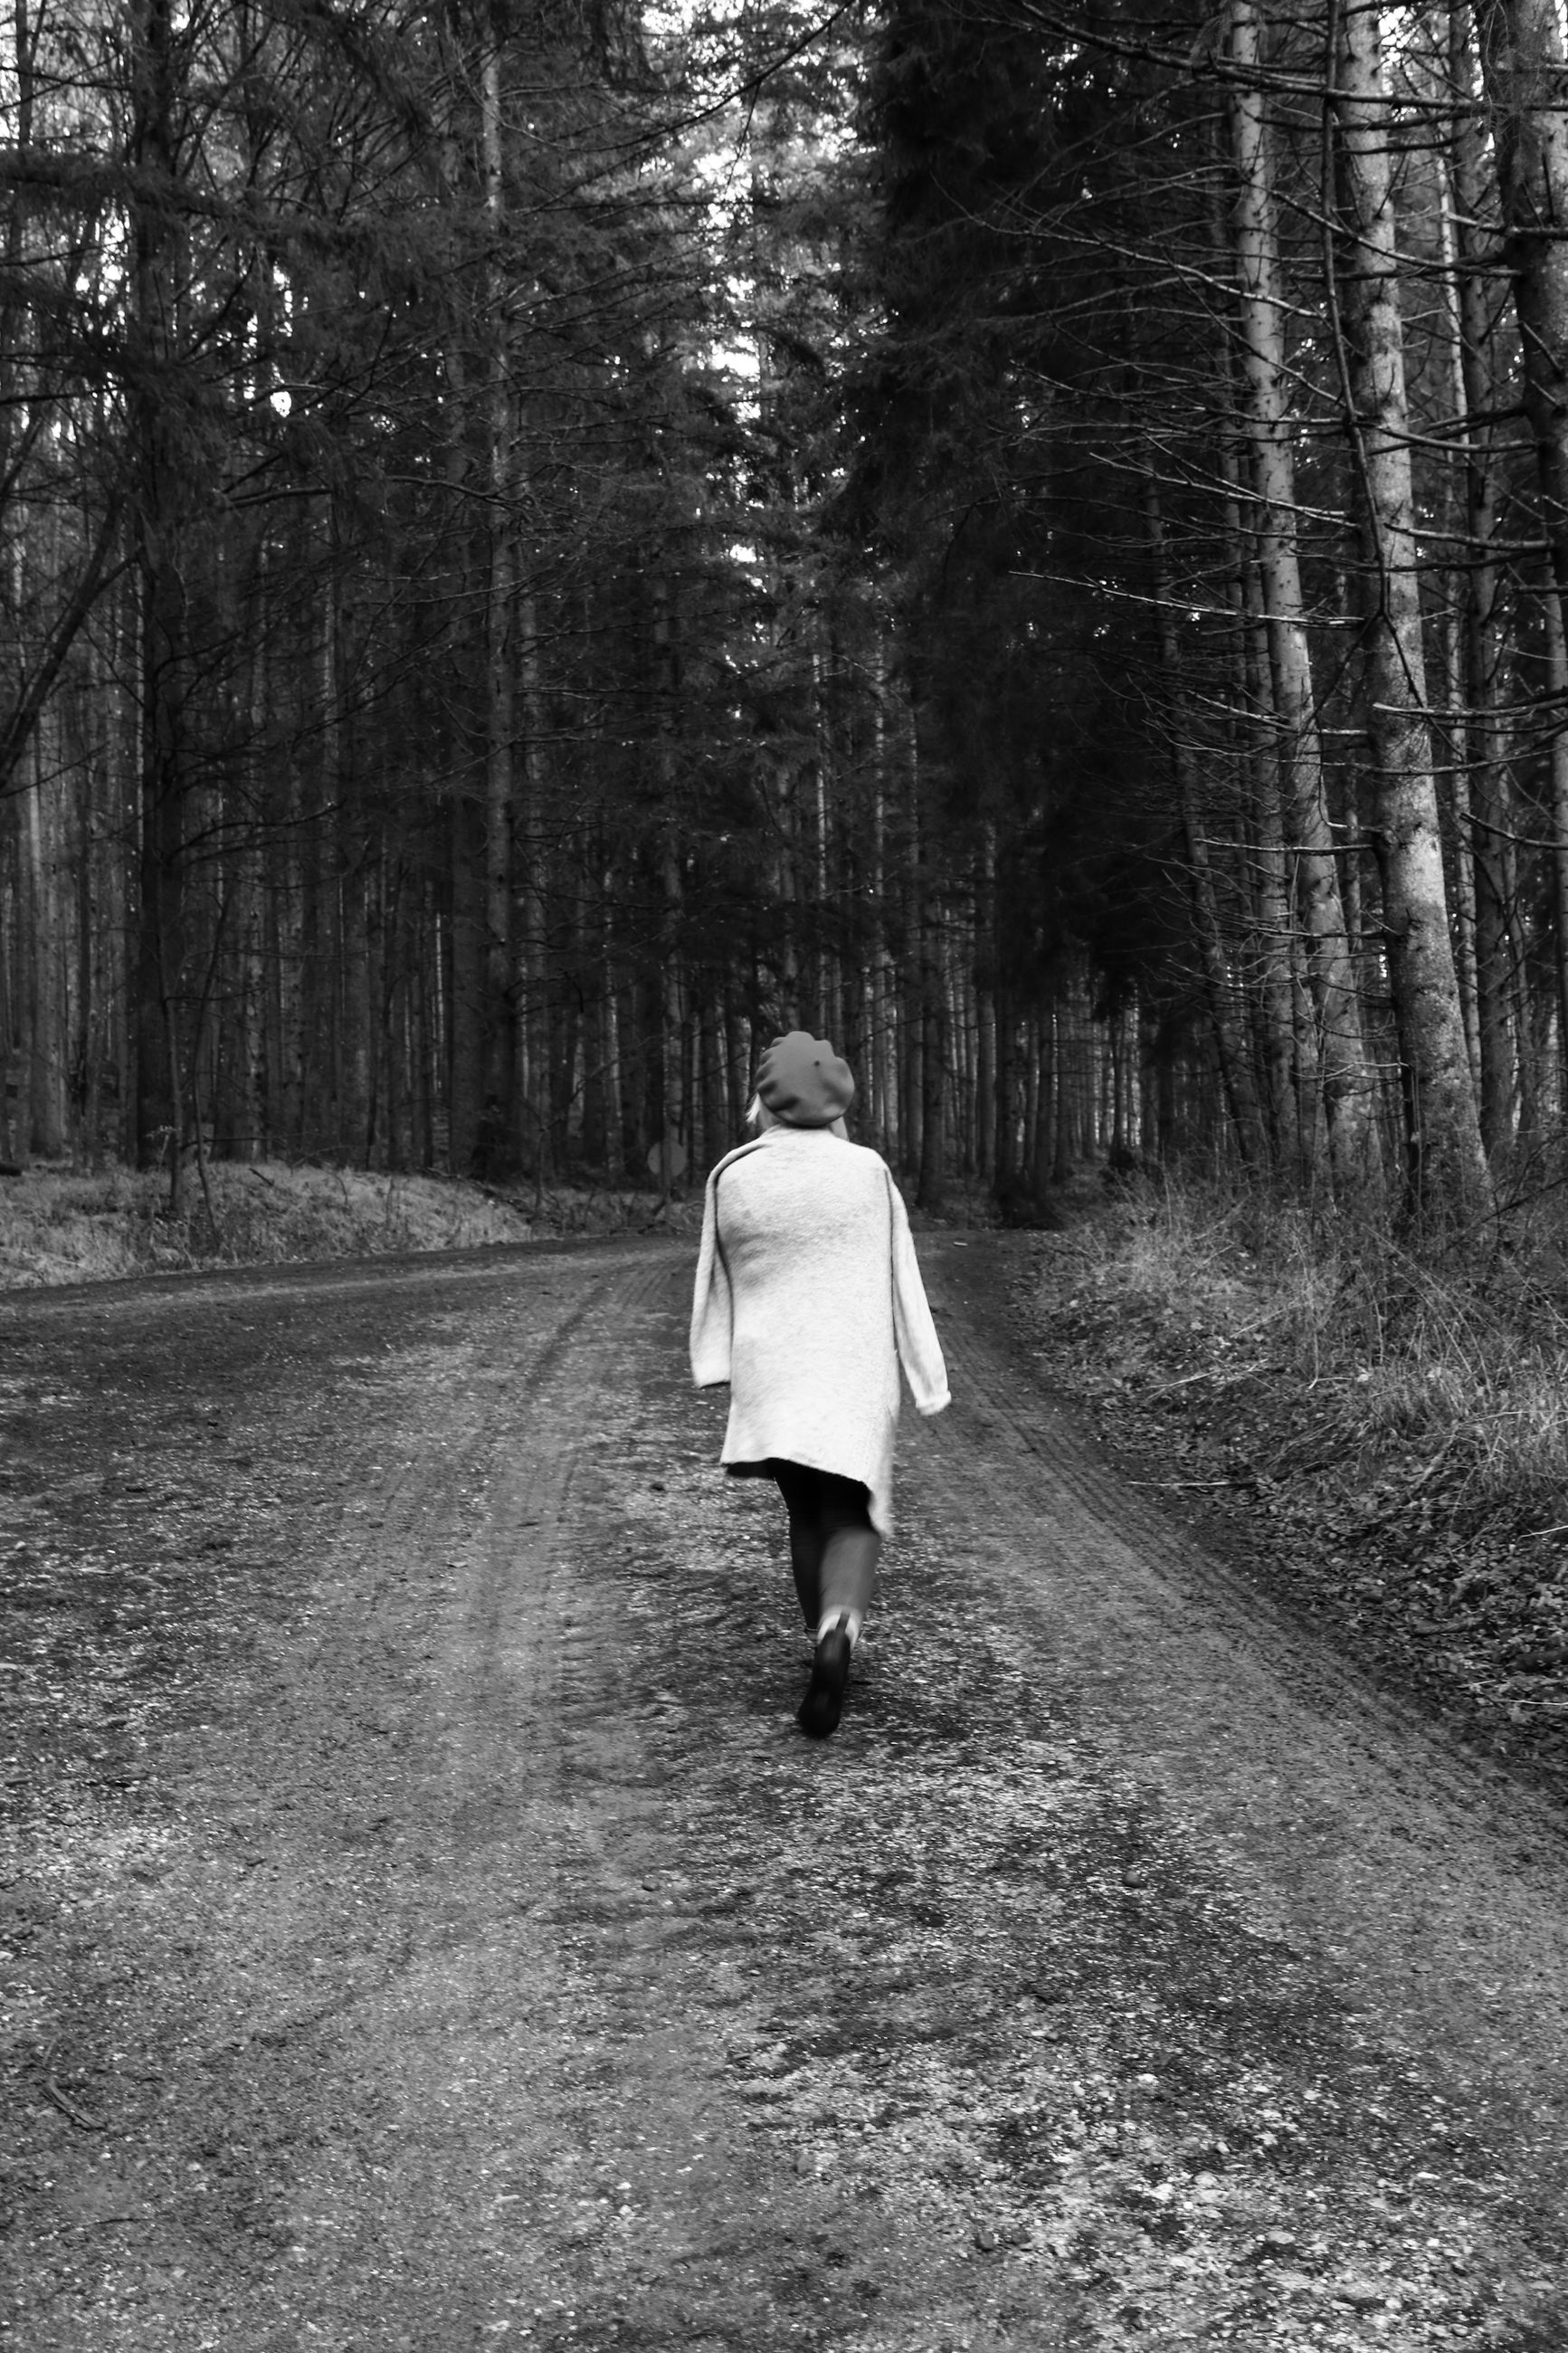 tree, rear view, walking, full length, one person, forest, land, plant, real people, women, direction, lifestyles, nature, the way forward, woodland, leisure activity, adult, day, casual clothing, outdoors, diminishing perspective, hood - clothing